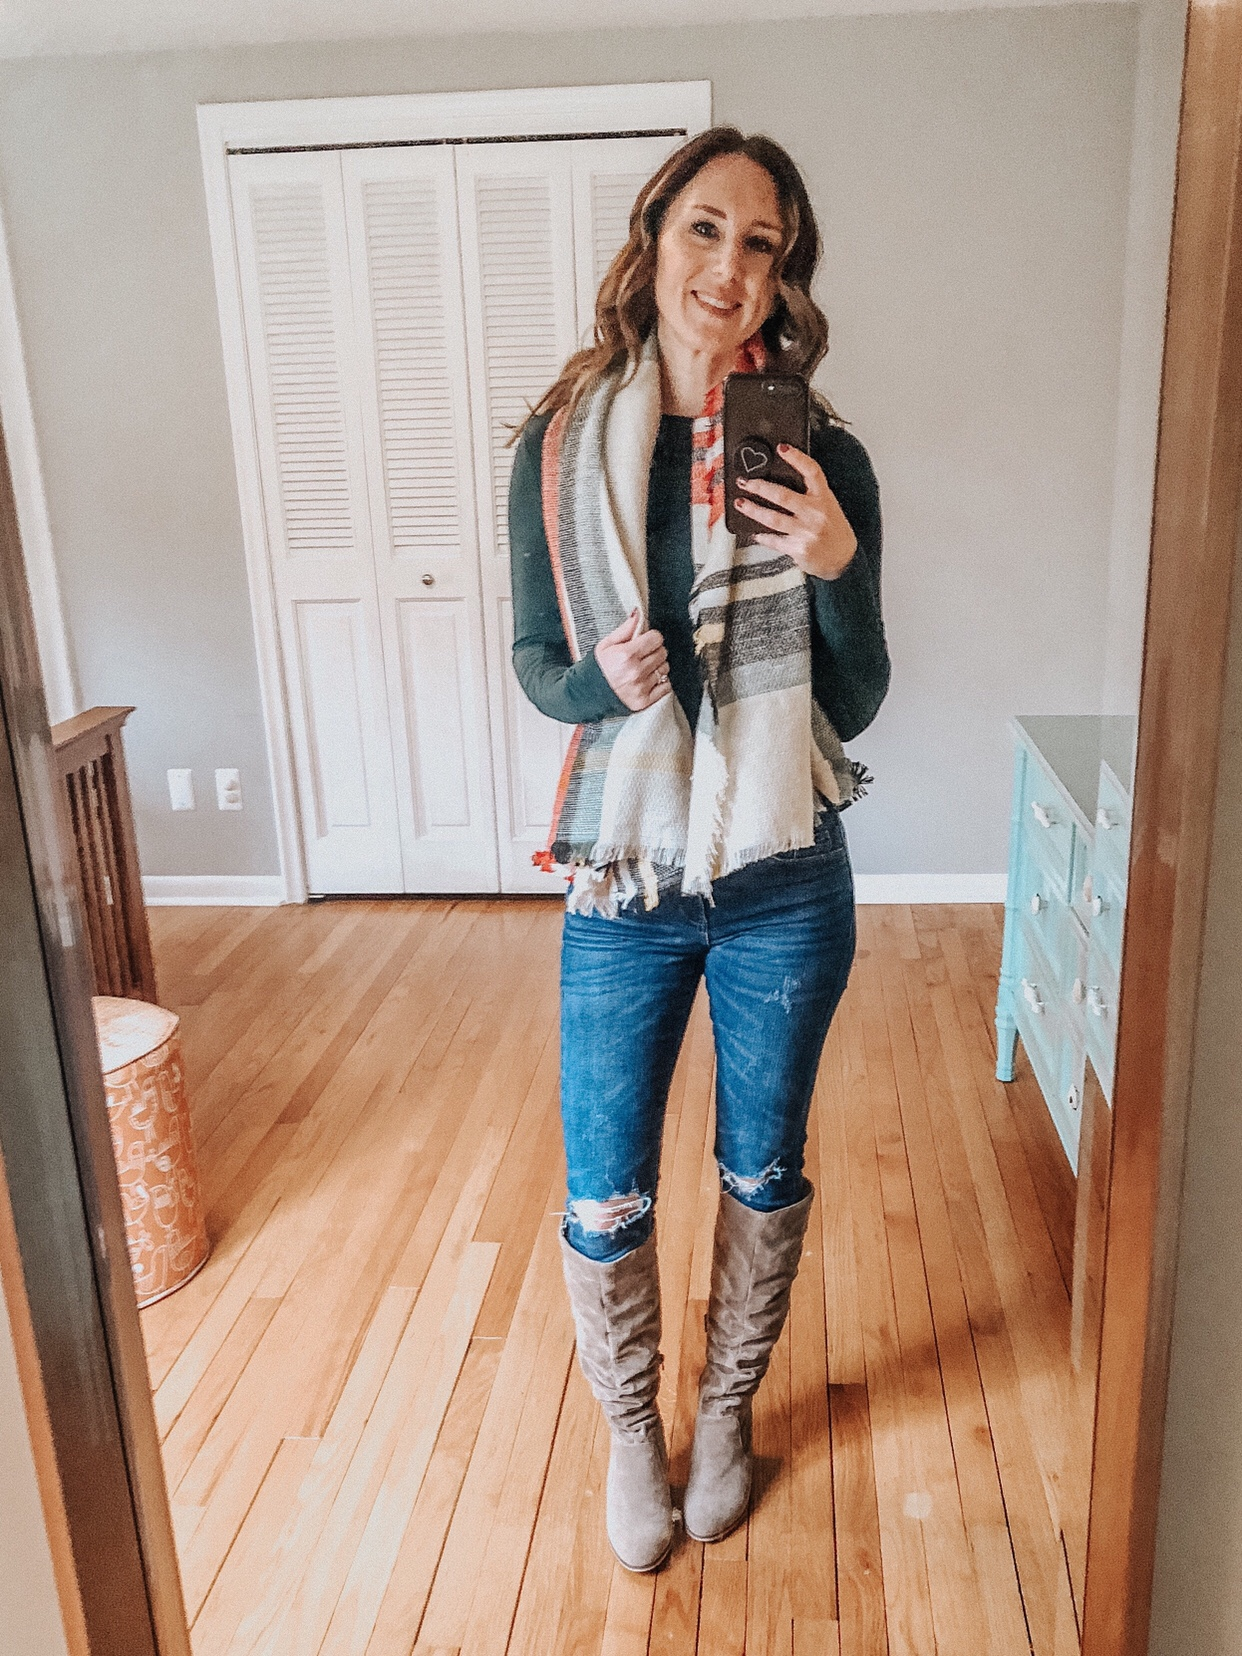 4 Ways to Wear a Blanket Scarf | Daily Splendor Life and Style Blog | scarf, winter, accessories, #blanketscarf #winteroutfit #accessories